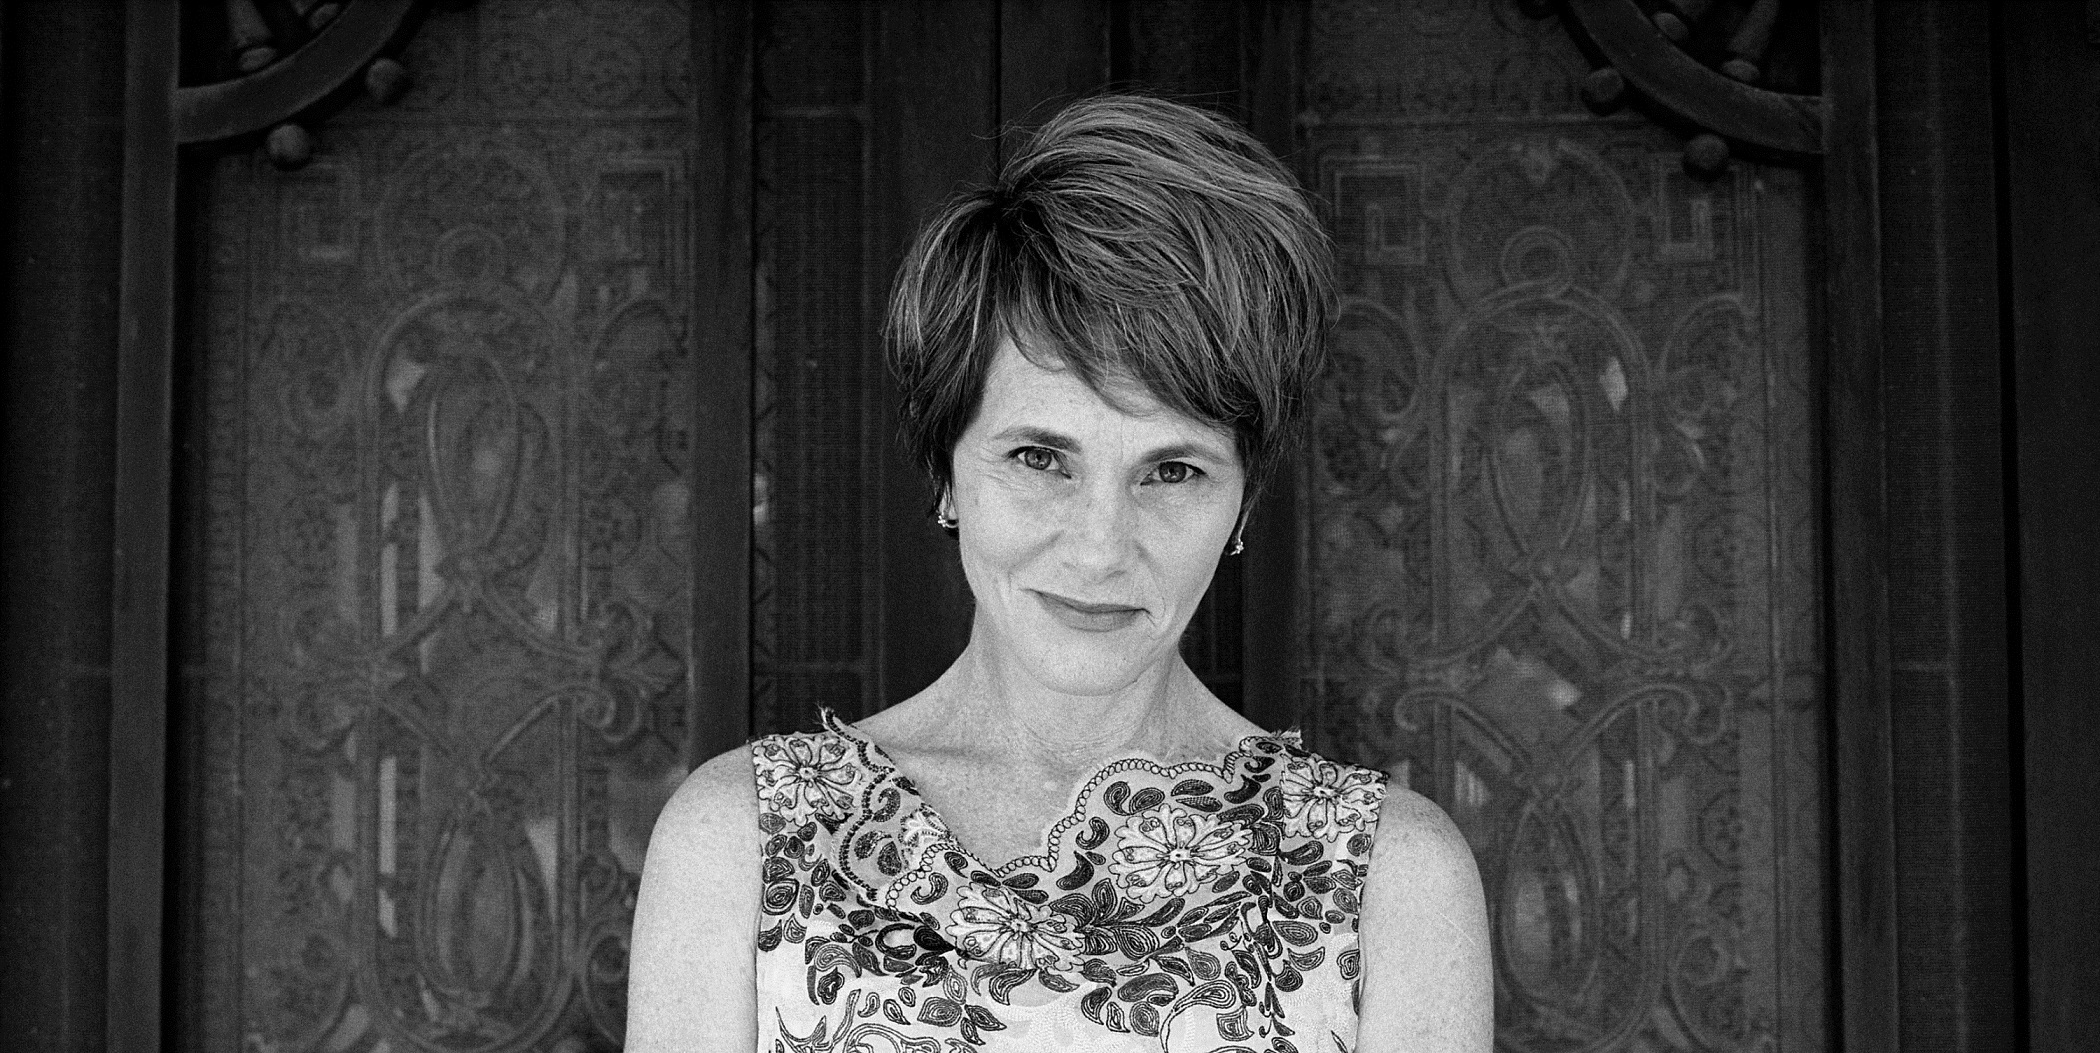 386_Shawn Colvin - Main Photo